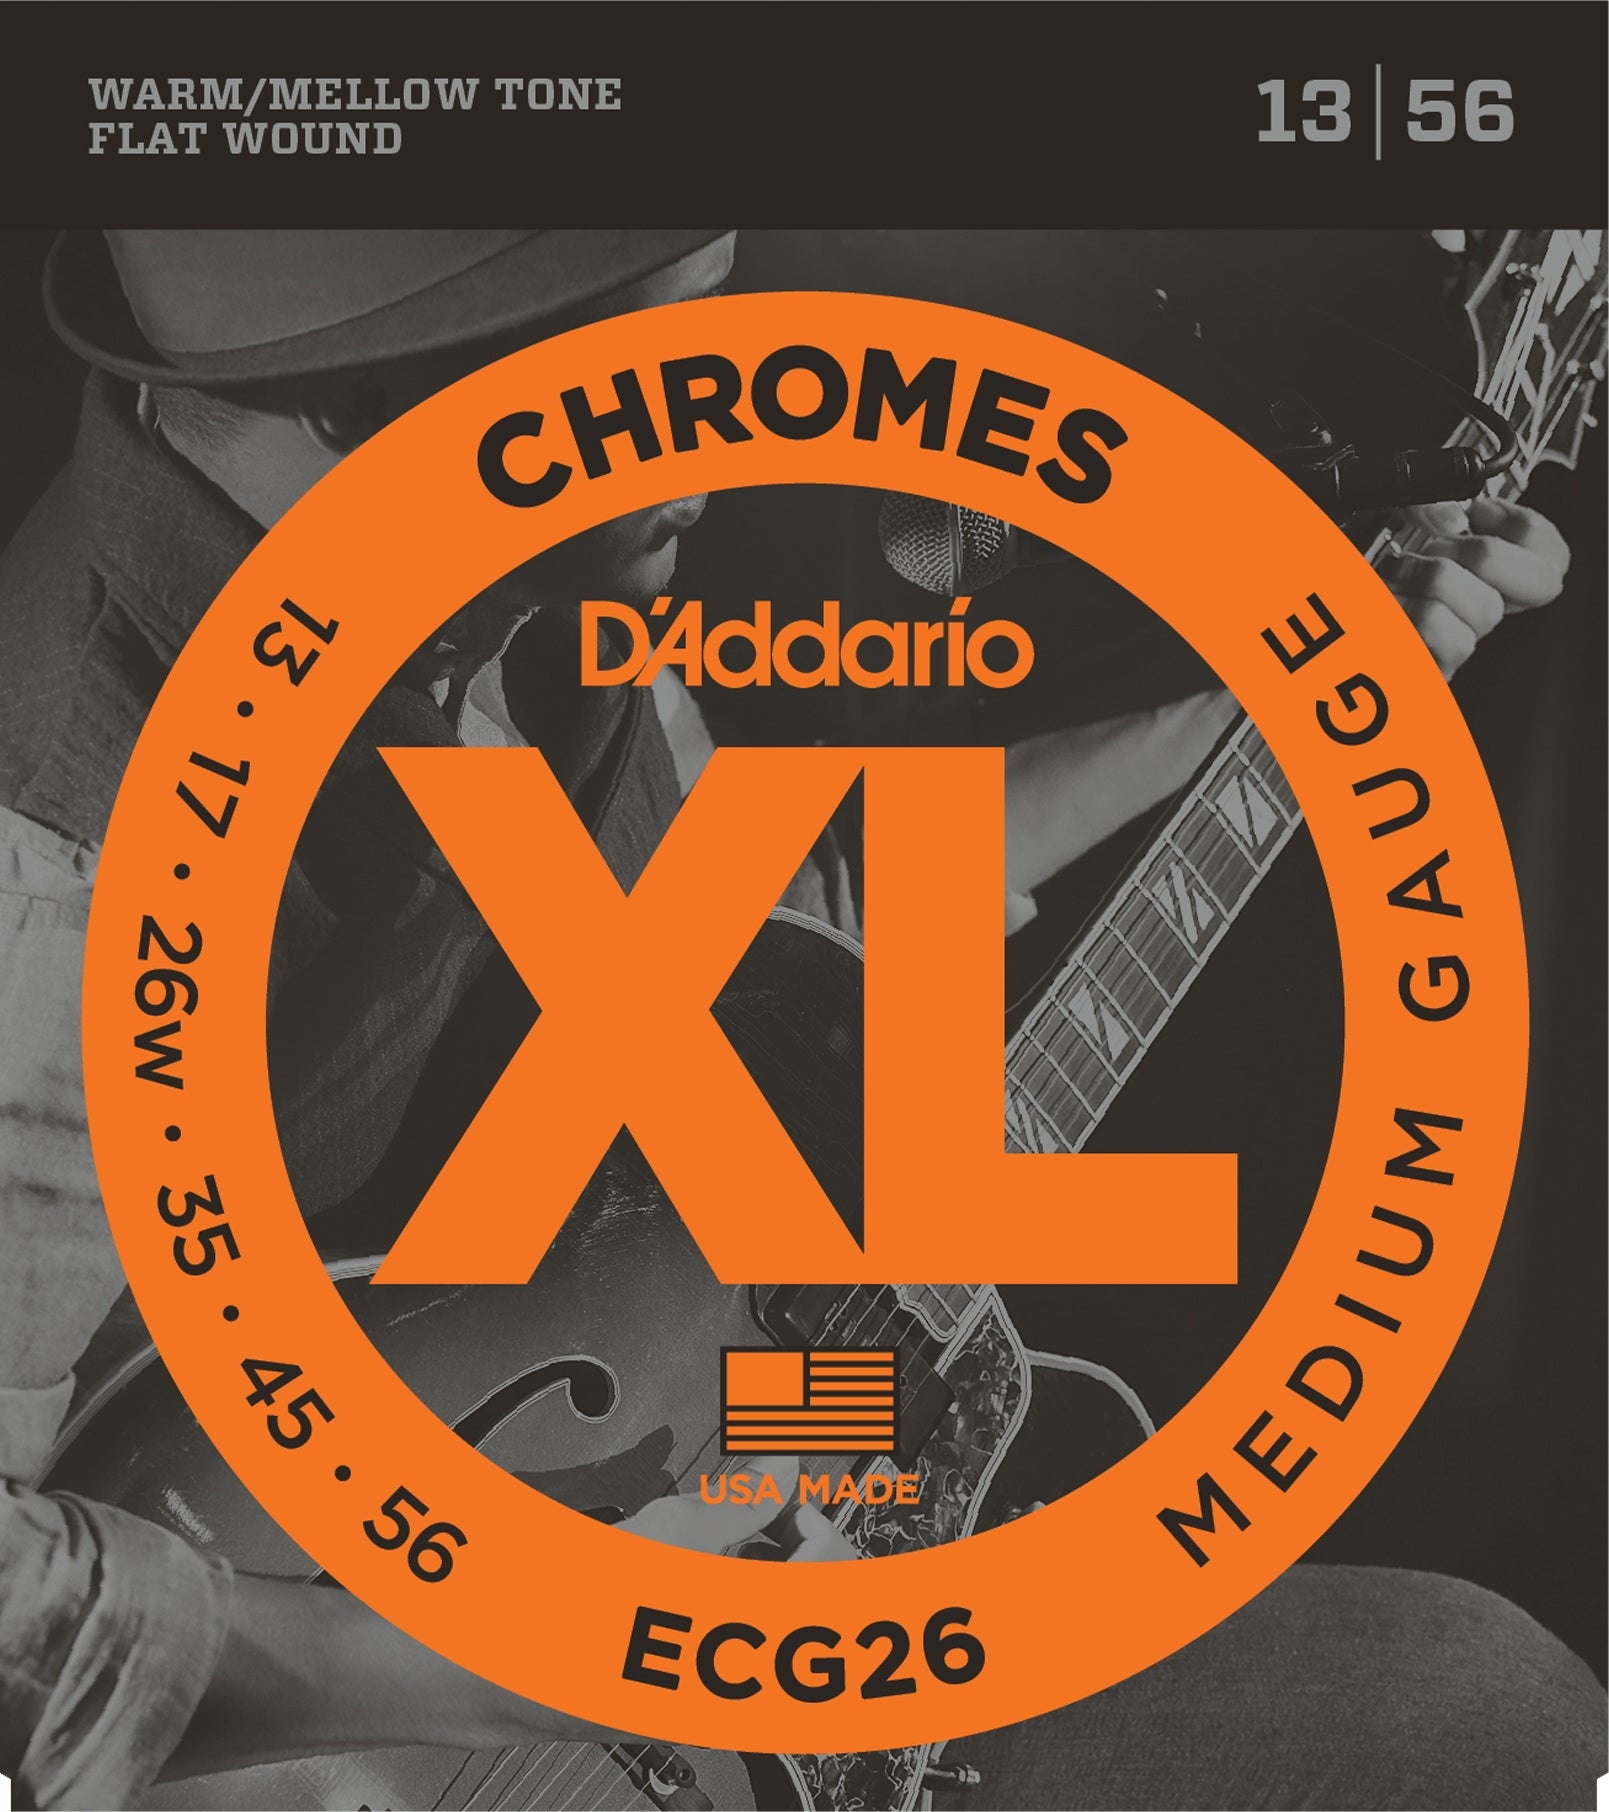 D'ADDARIO CHROMES FLAT WOUND ELECTRIC GUITAR STRINGS MEDIUM 13-56